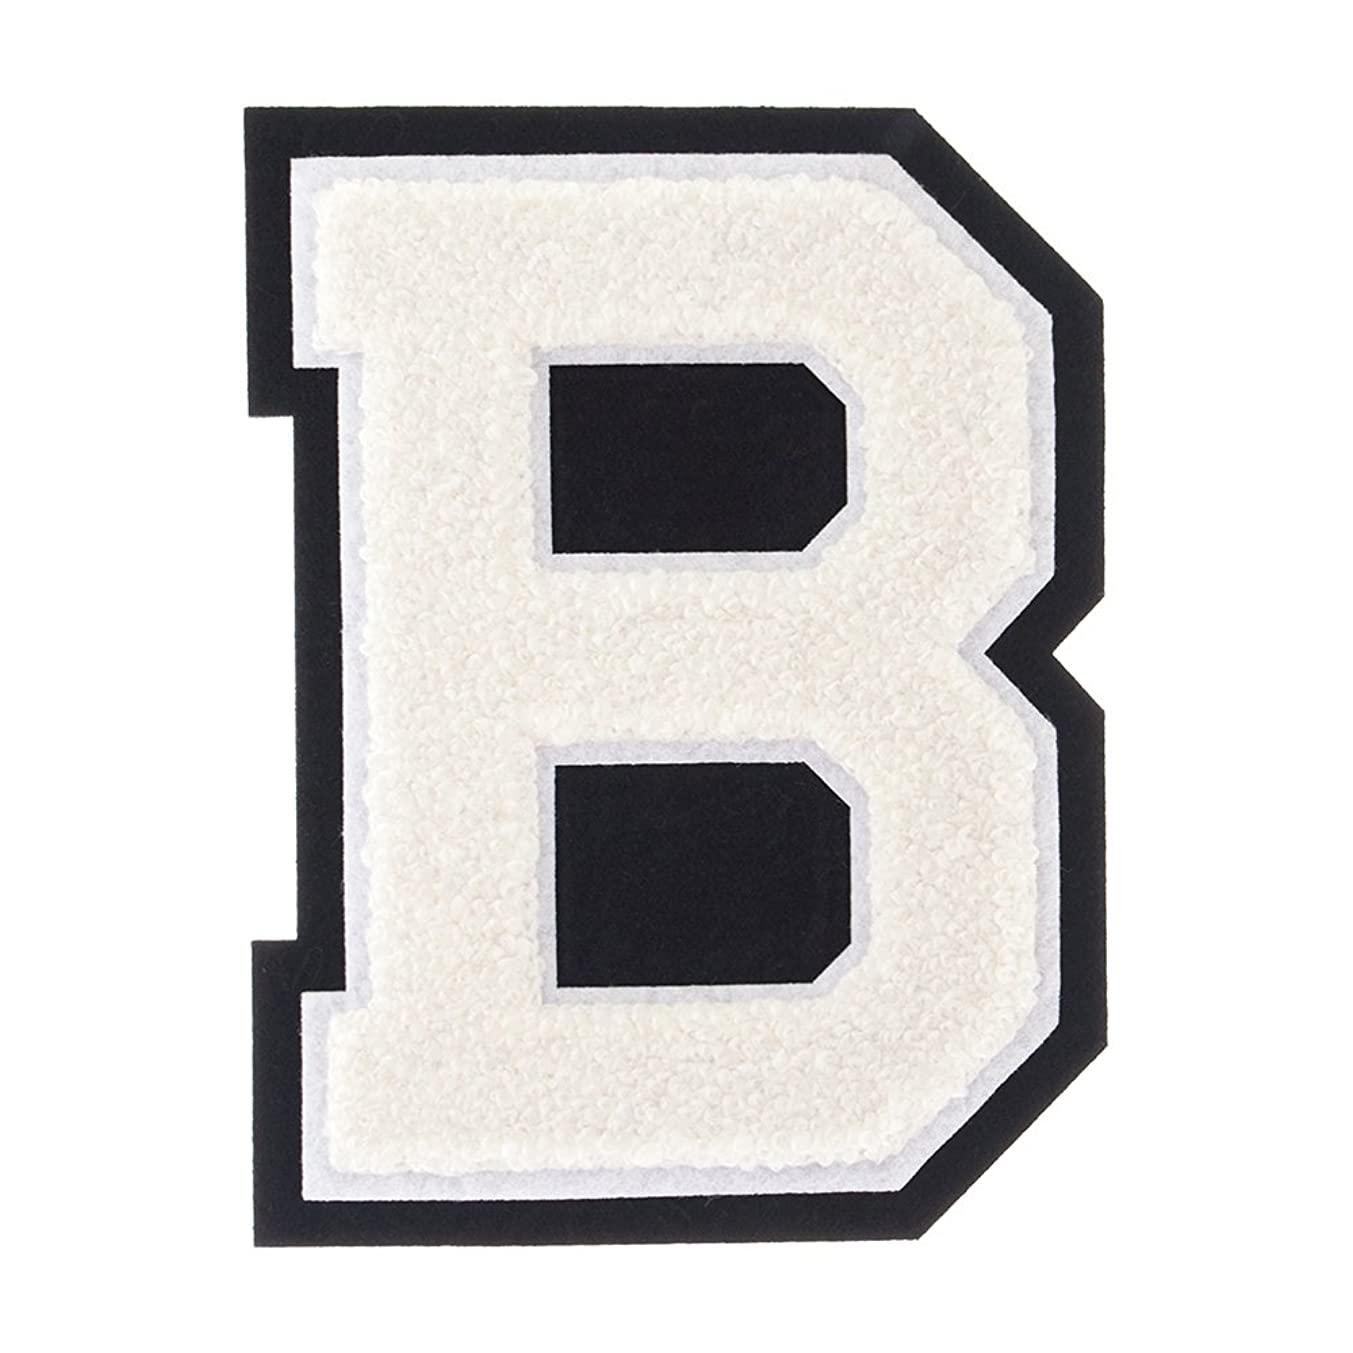 B - White on Black - 4 1/2 Inch Heat Seal/Sew On Chenille Varsity Letter